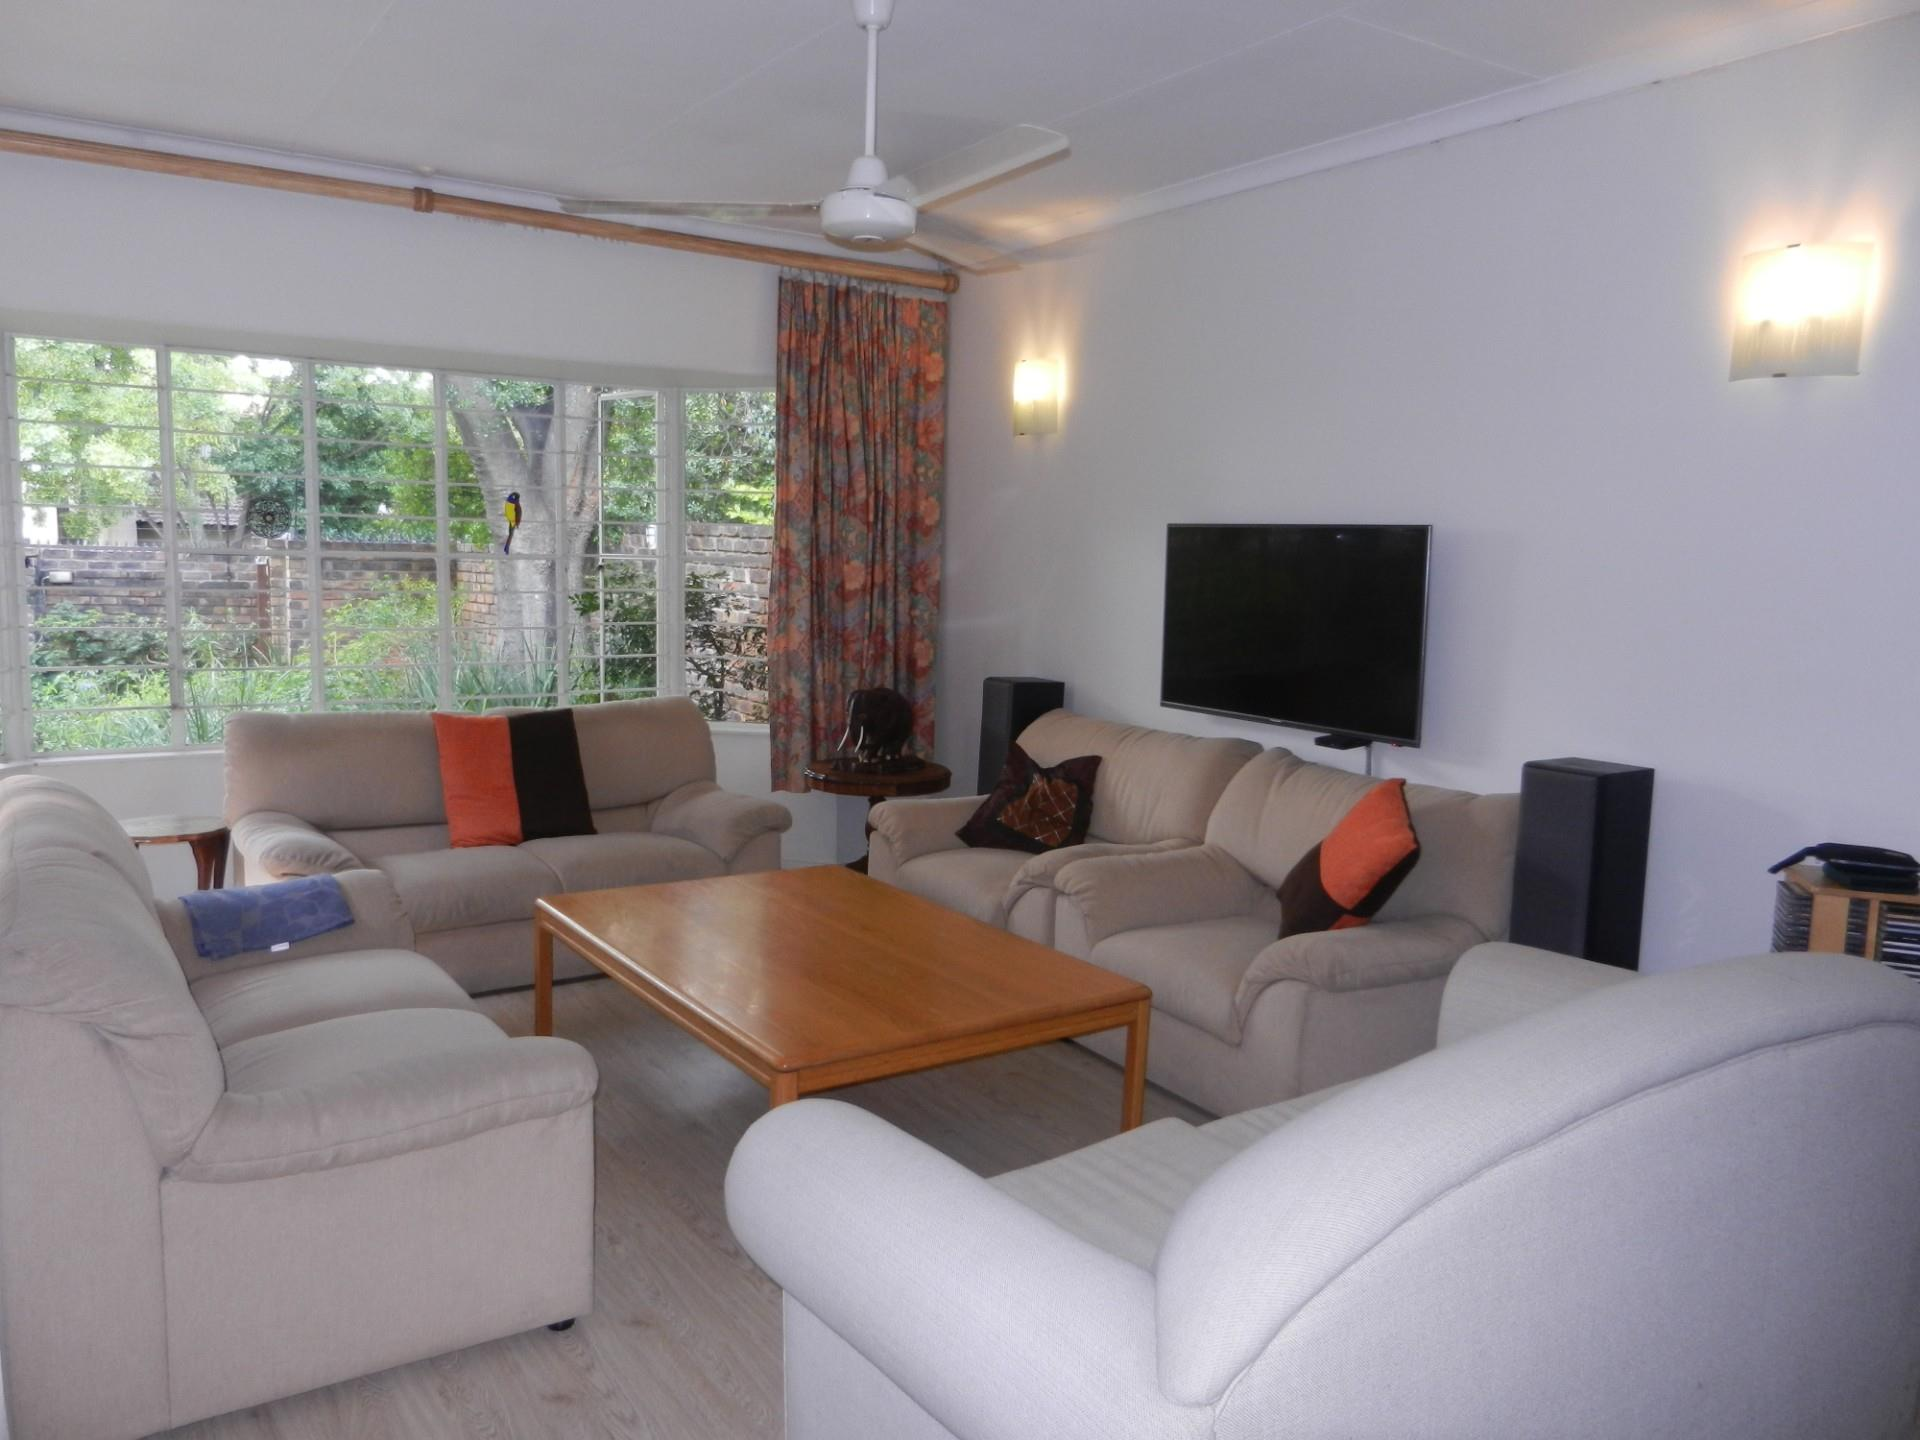 3 Bedroom Townhouse For Sale in River Club